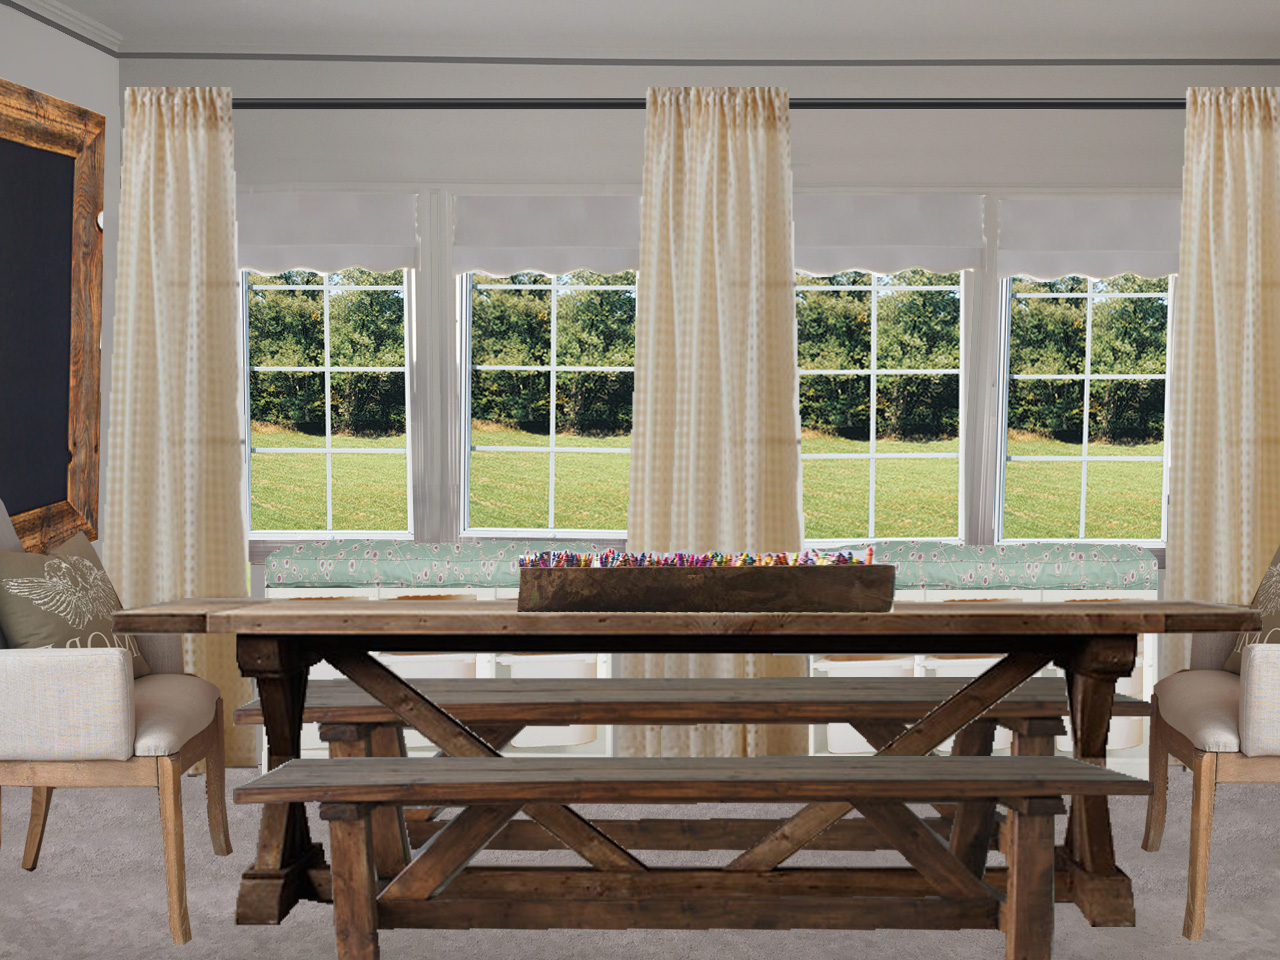 Sunroom window treatments for dining room window treatments tropical download window covering - Sunroom dining room ...